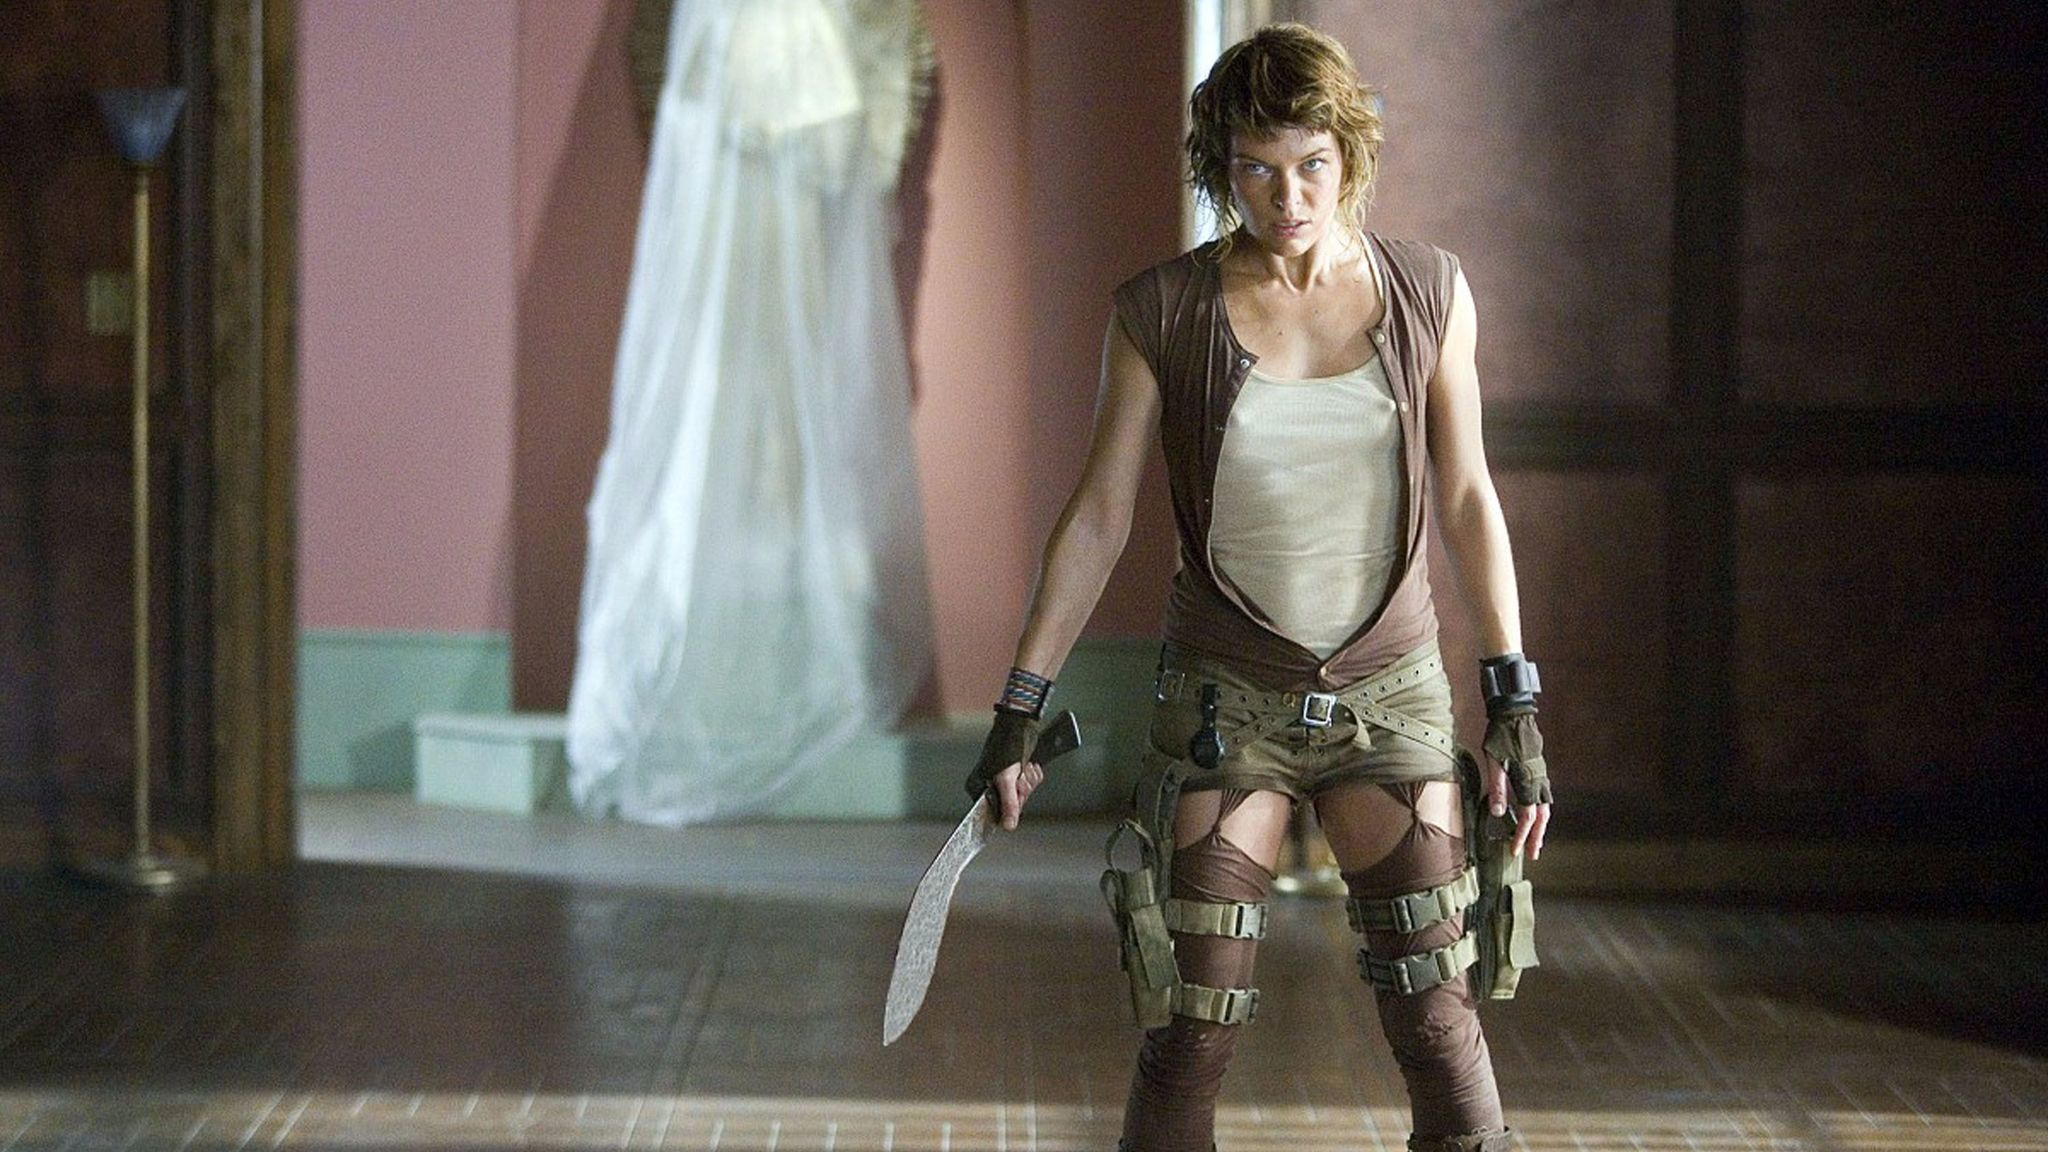 Milla Jovovich stars in Sony Pictures' action-thriller